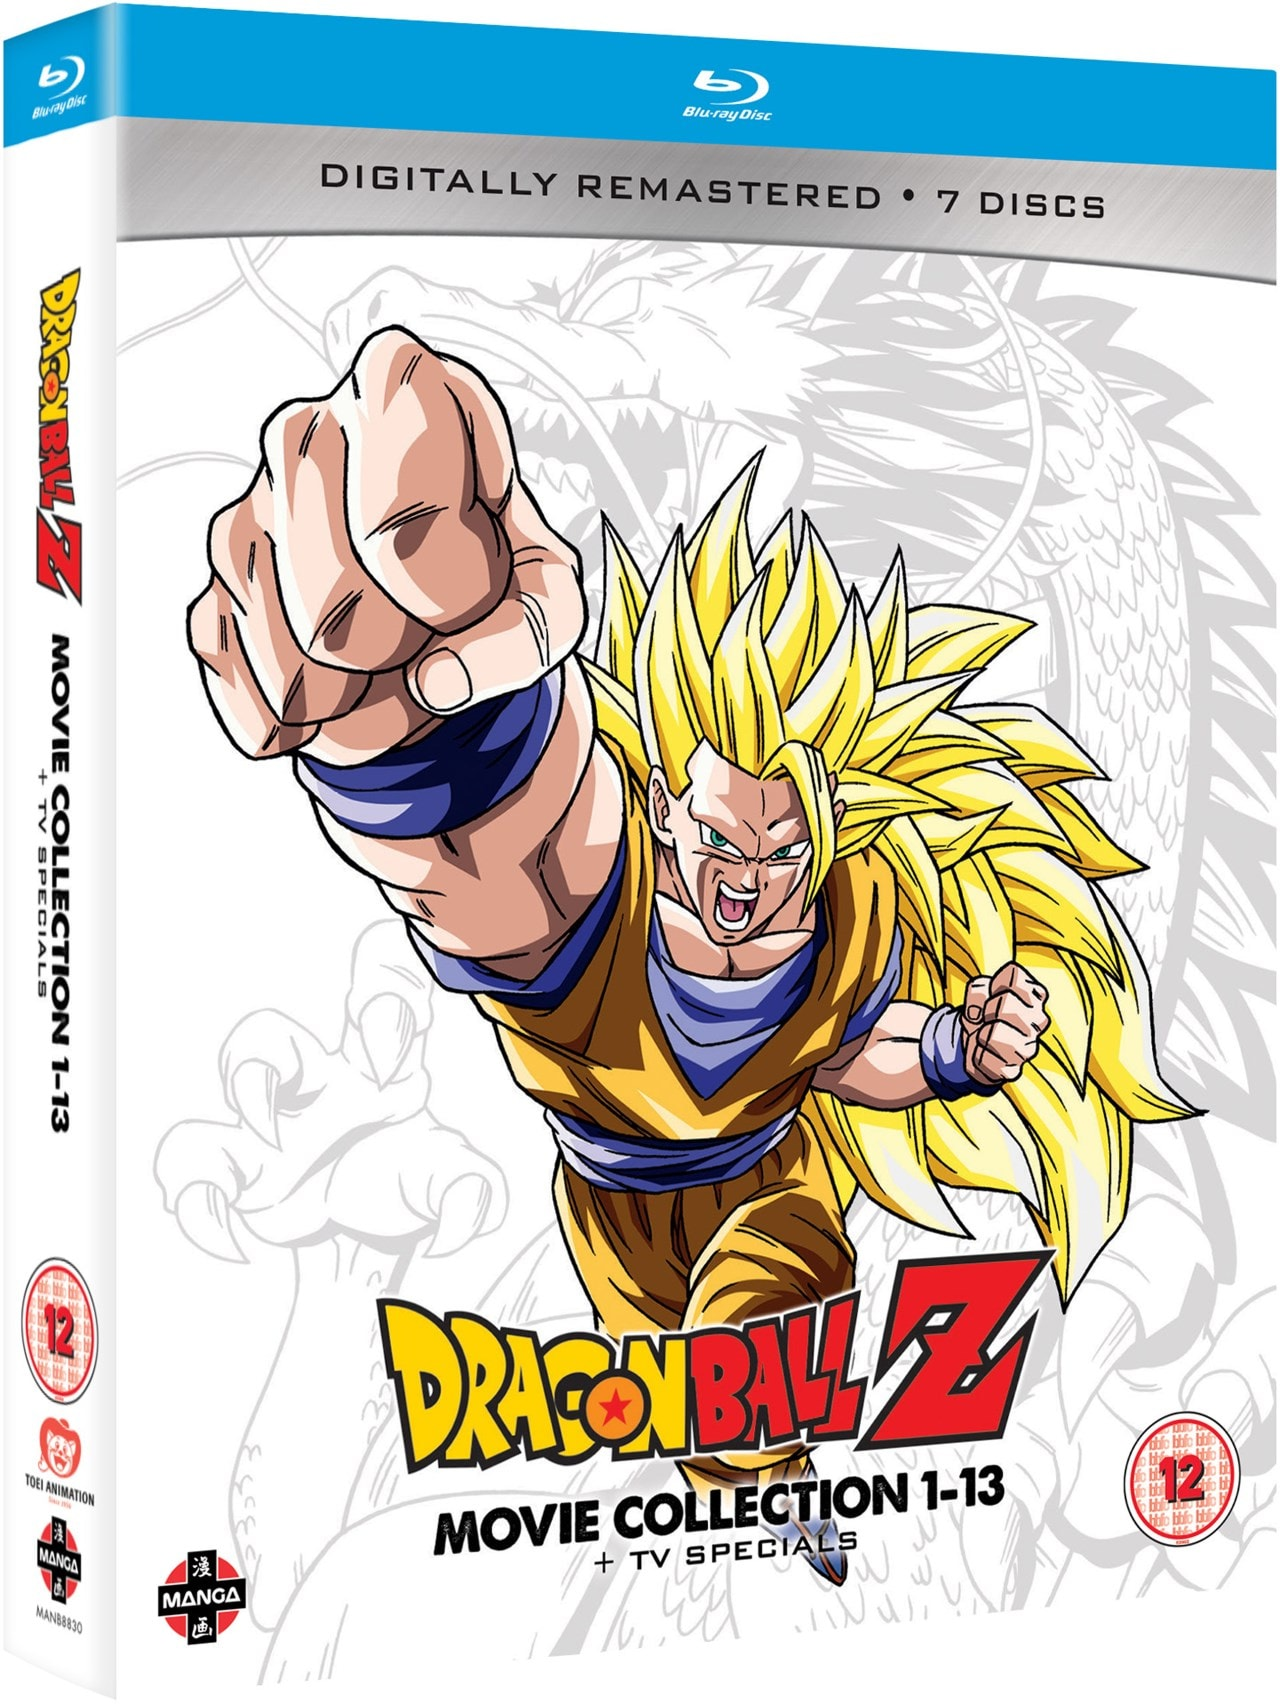 Dragon Ball Z: Movie Collection 1-13 + TV Specials - 2